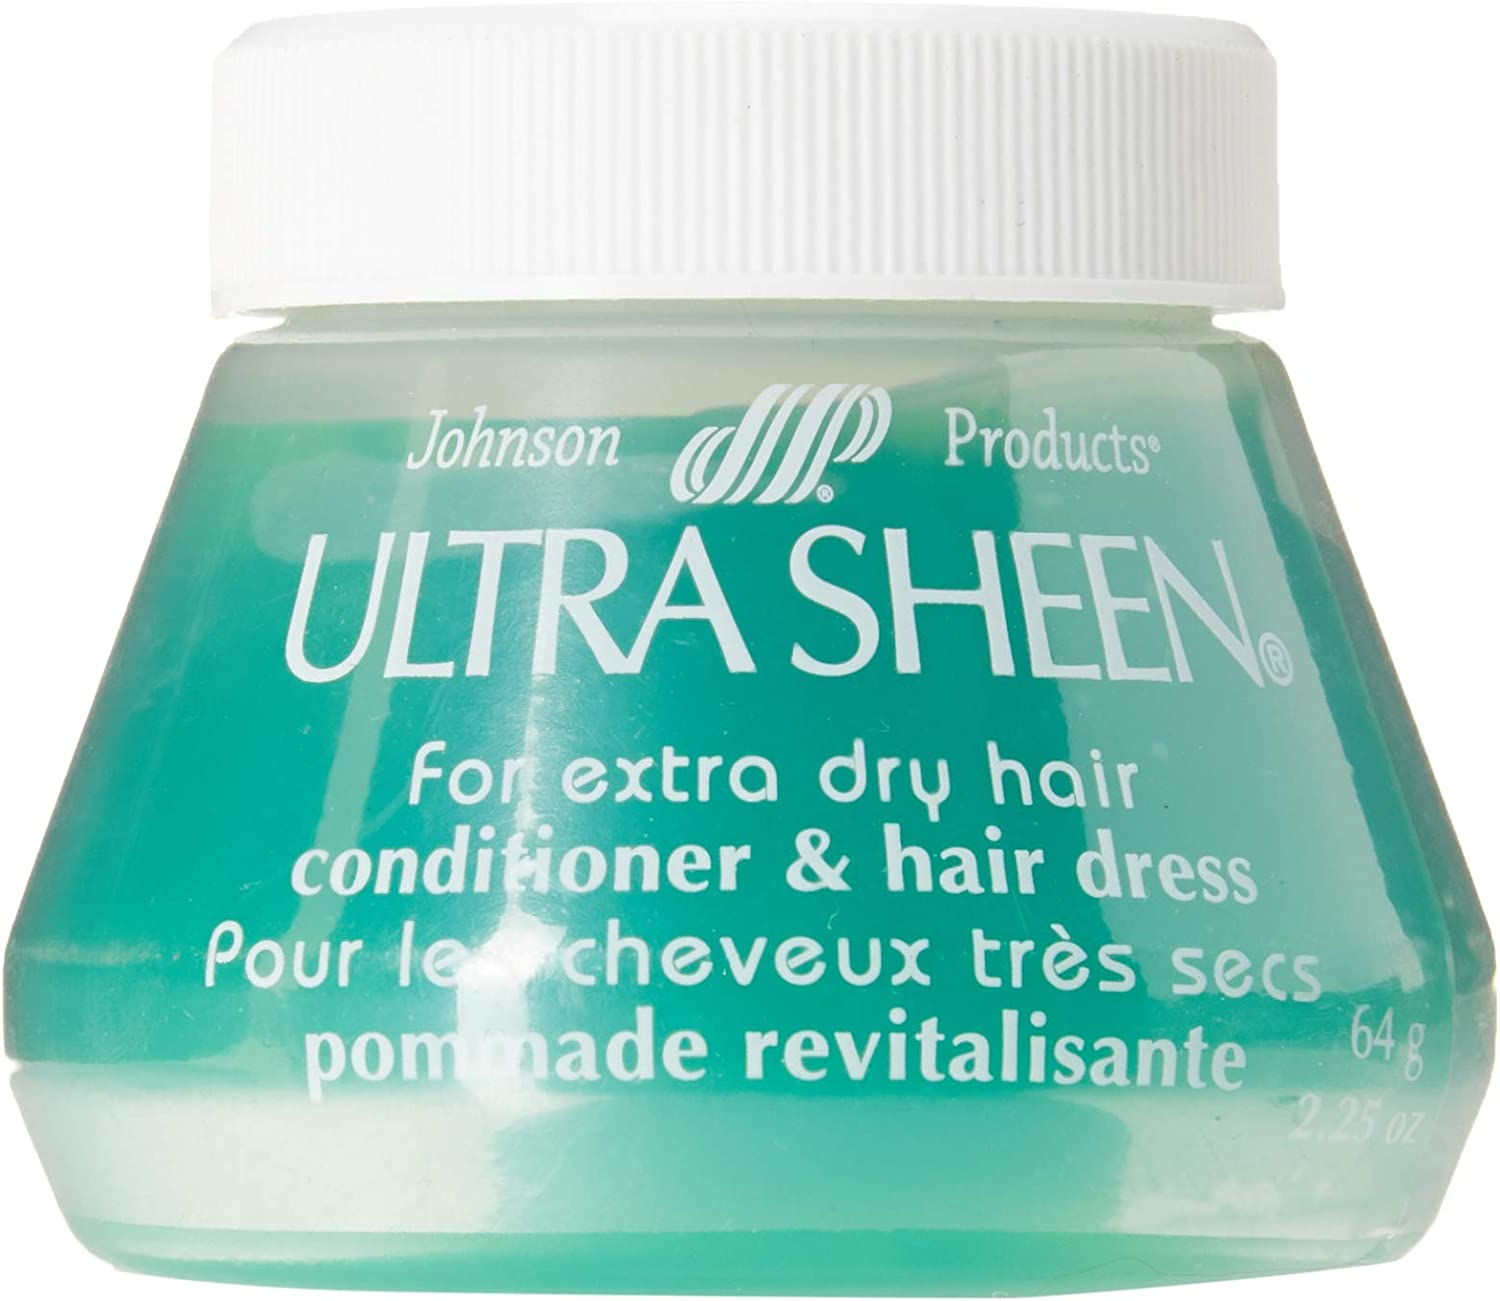 Ultra Sheen Conditioner & Hair Dress, for Extra Dry Hair 2.25 oz